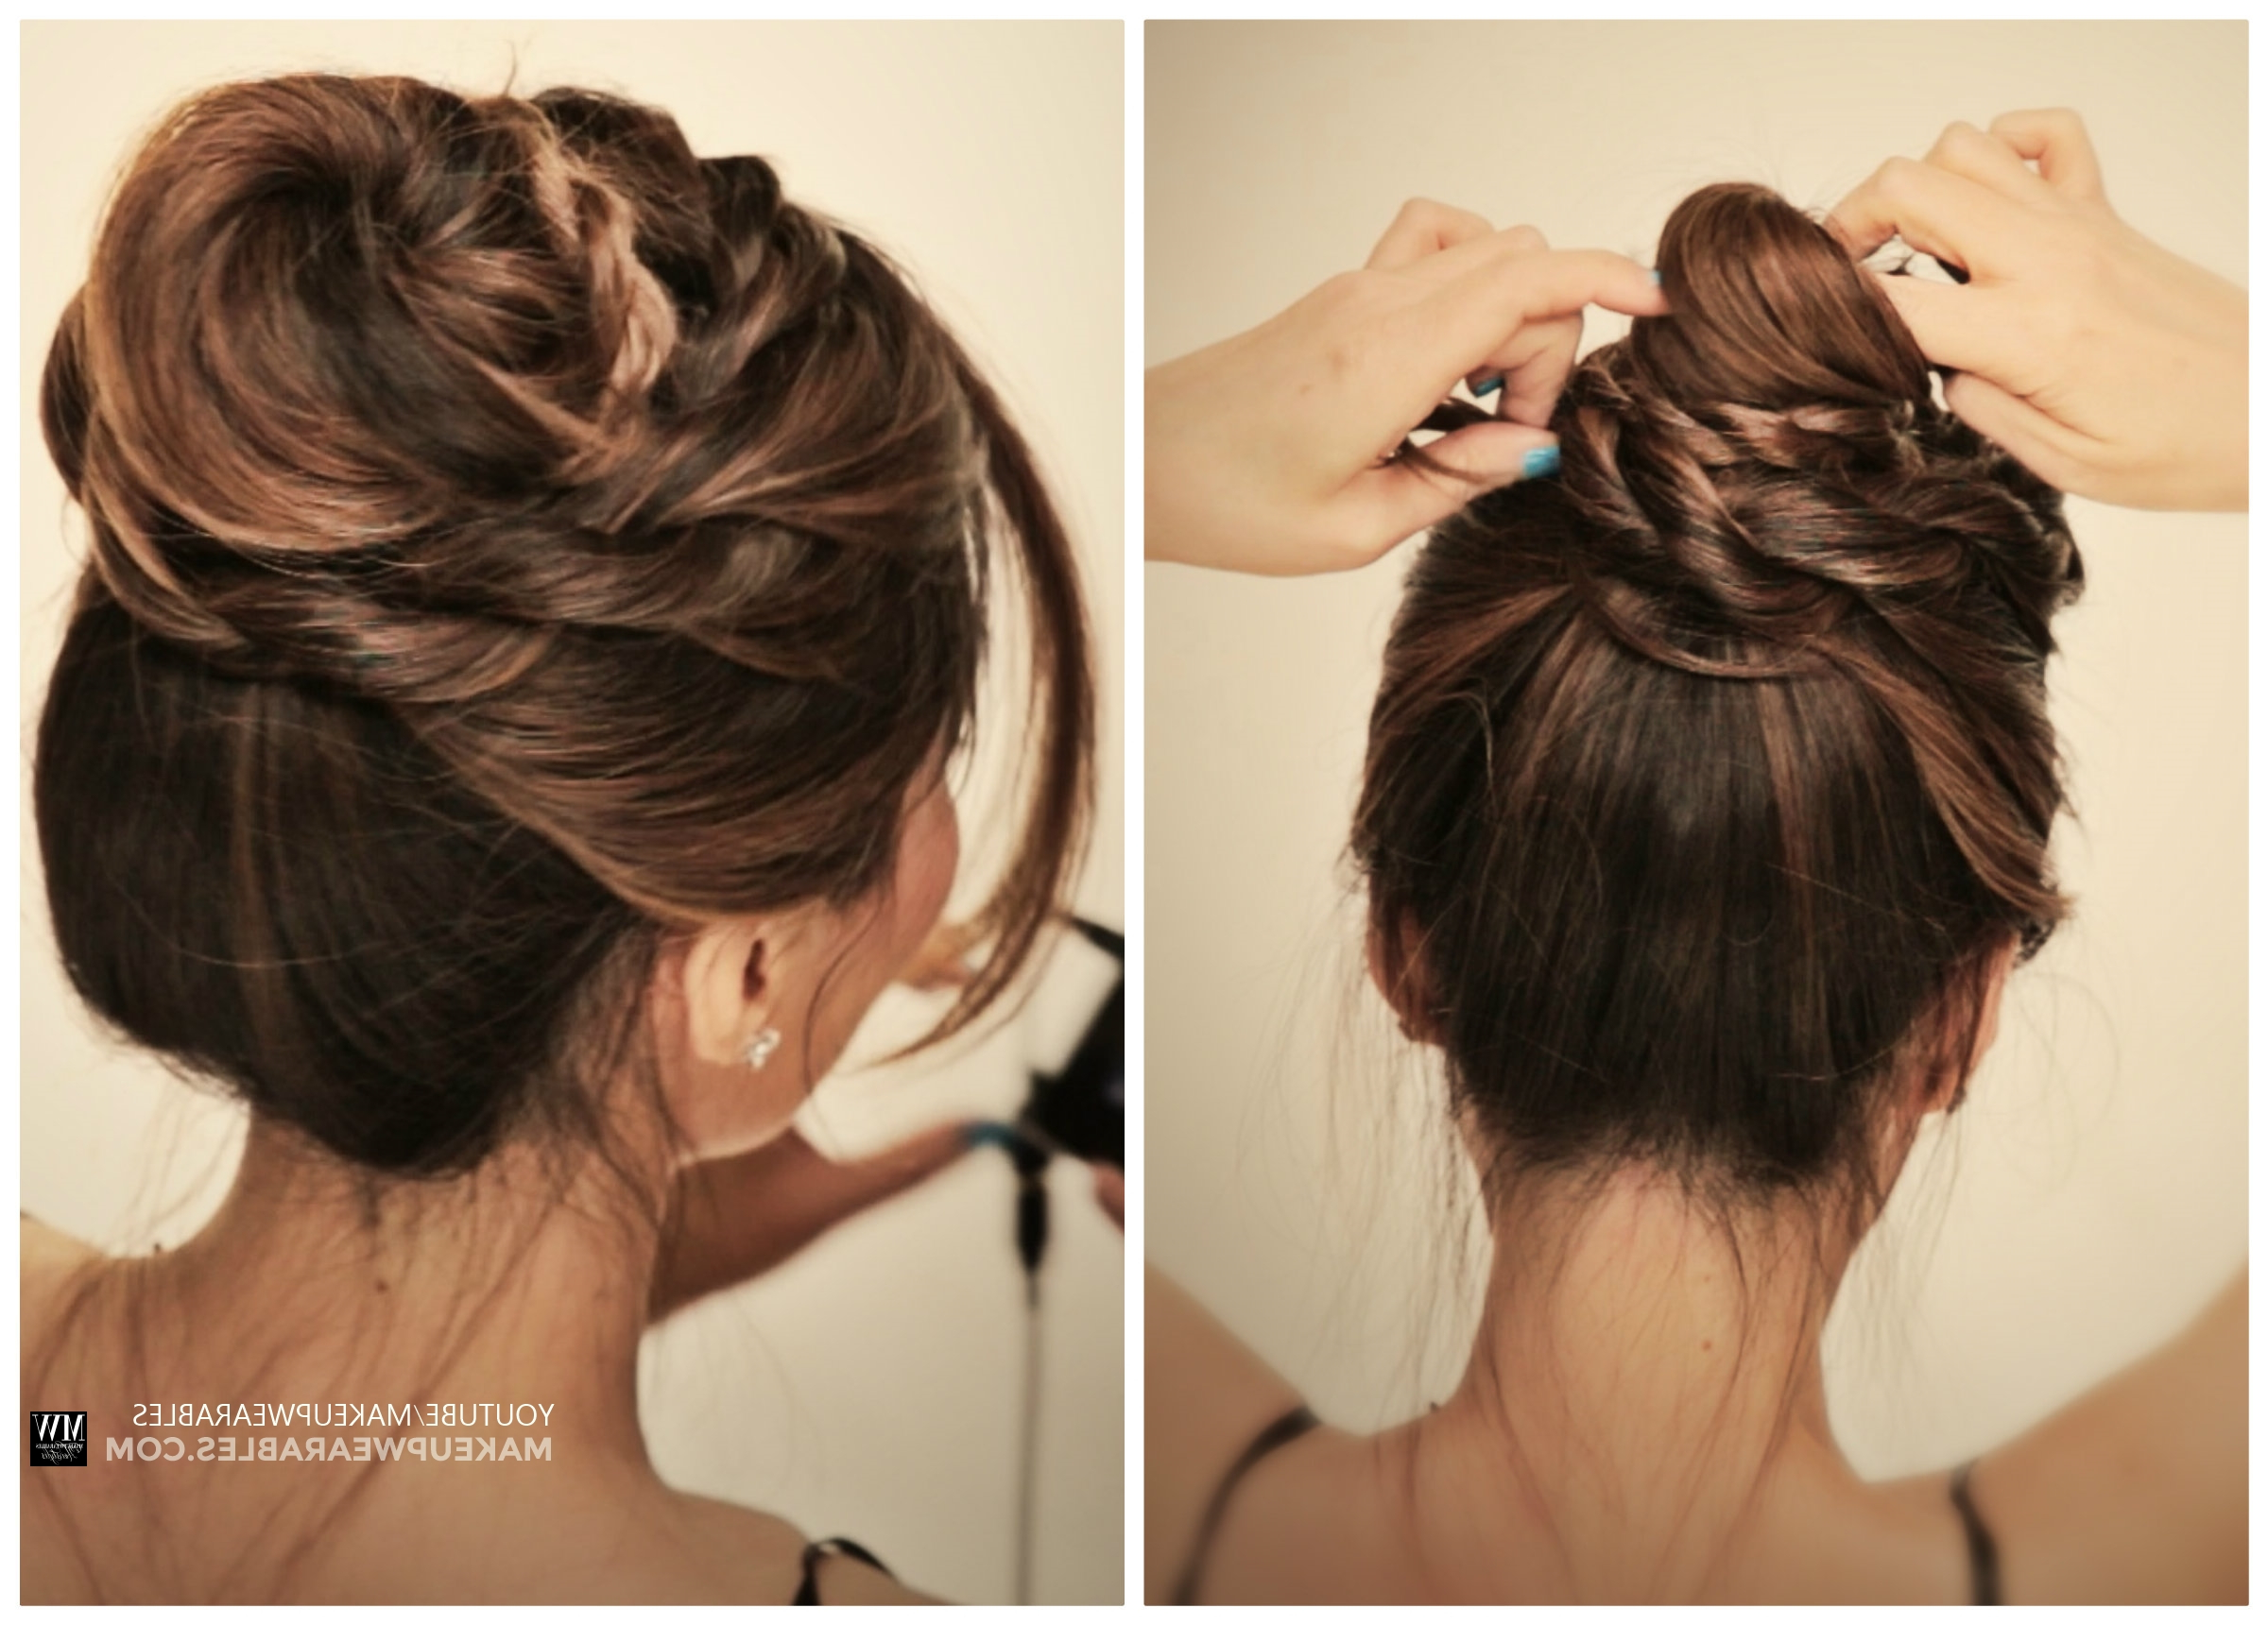 How To: 5 Amazingly Cute + Easy Hairstyles With A Simple Twist Inside Recent Simple And Cute Wedding Hairstyles For Long Hair (Gallery 7 of 20)